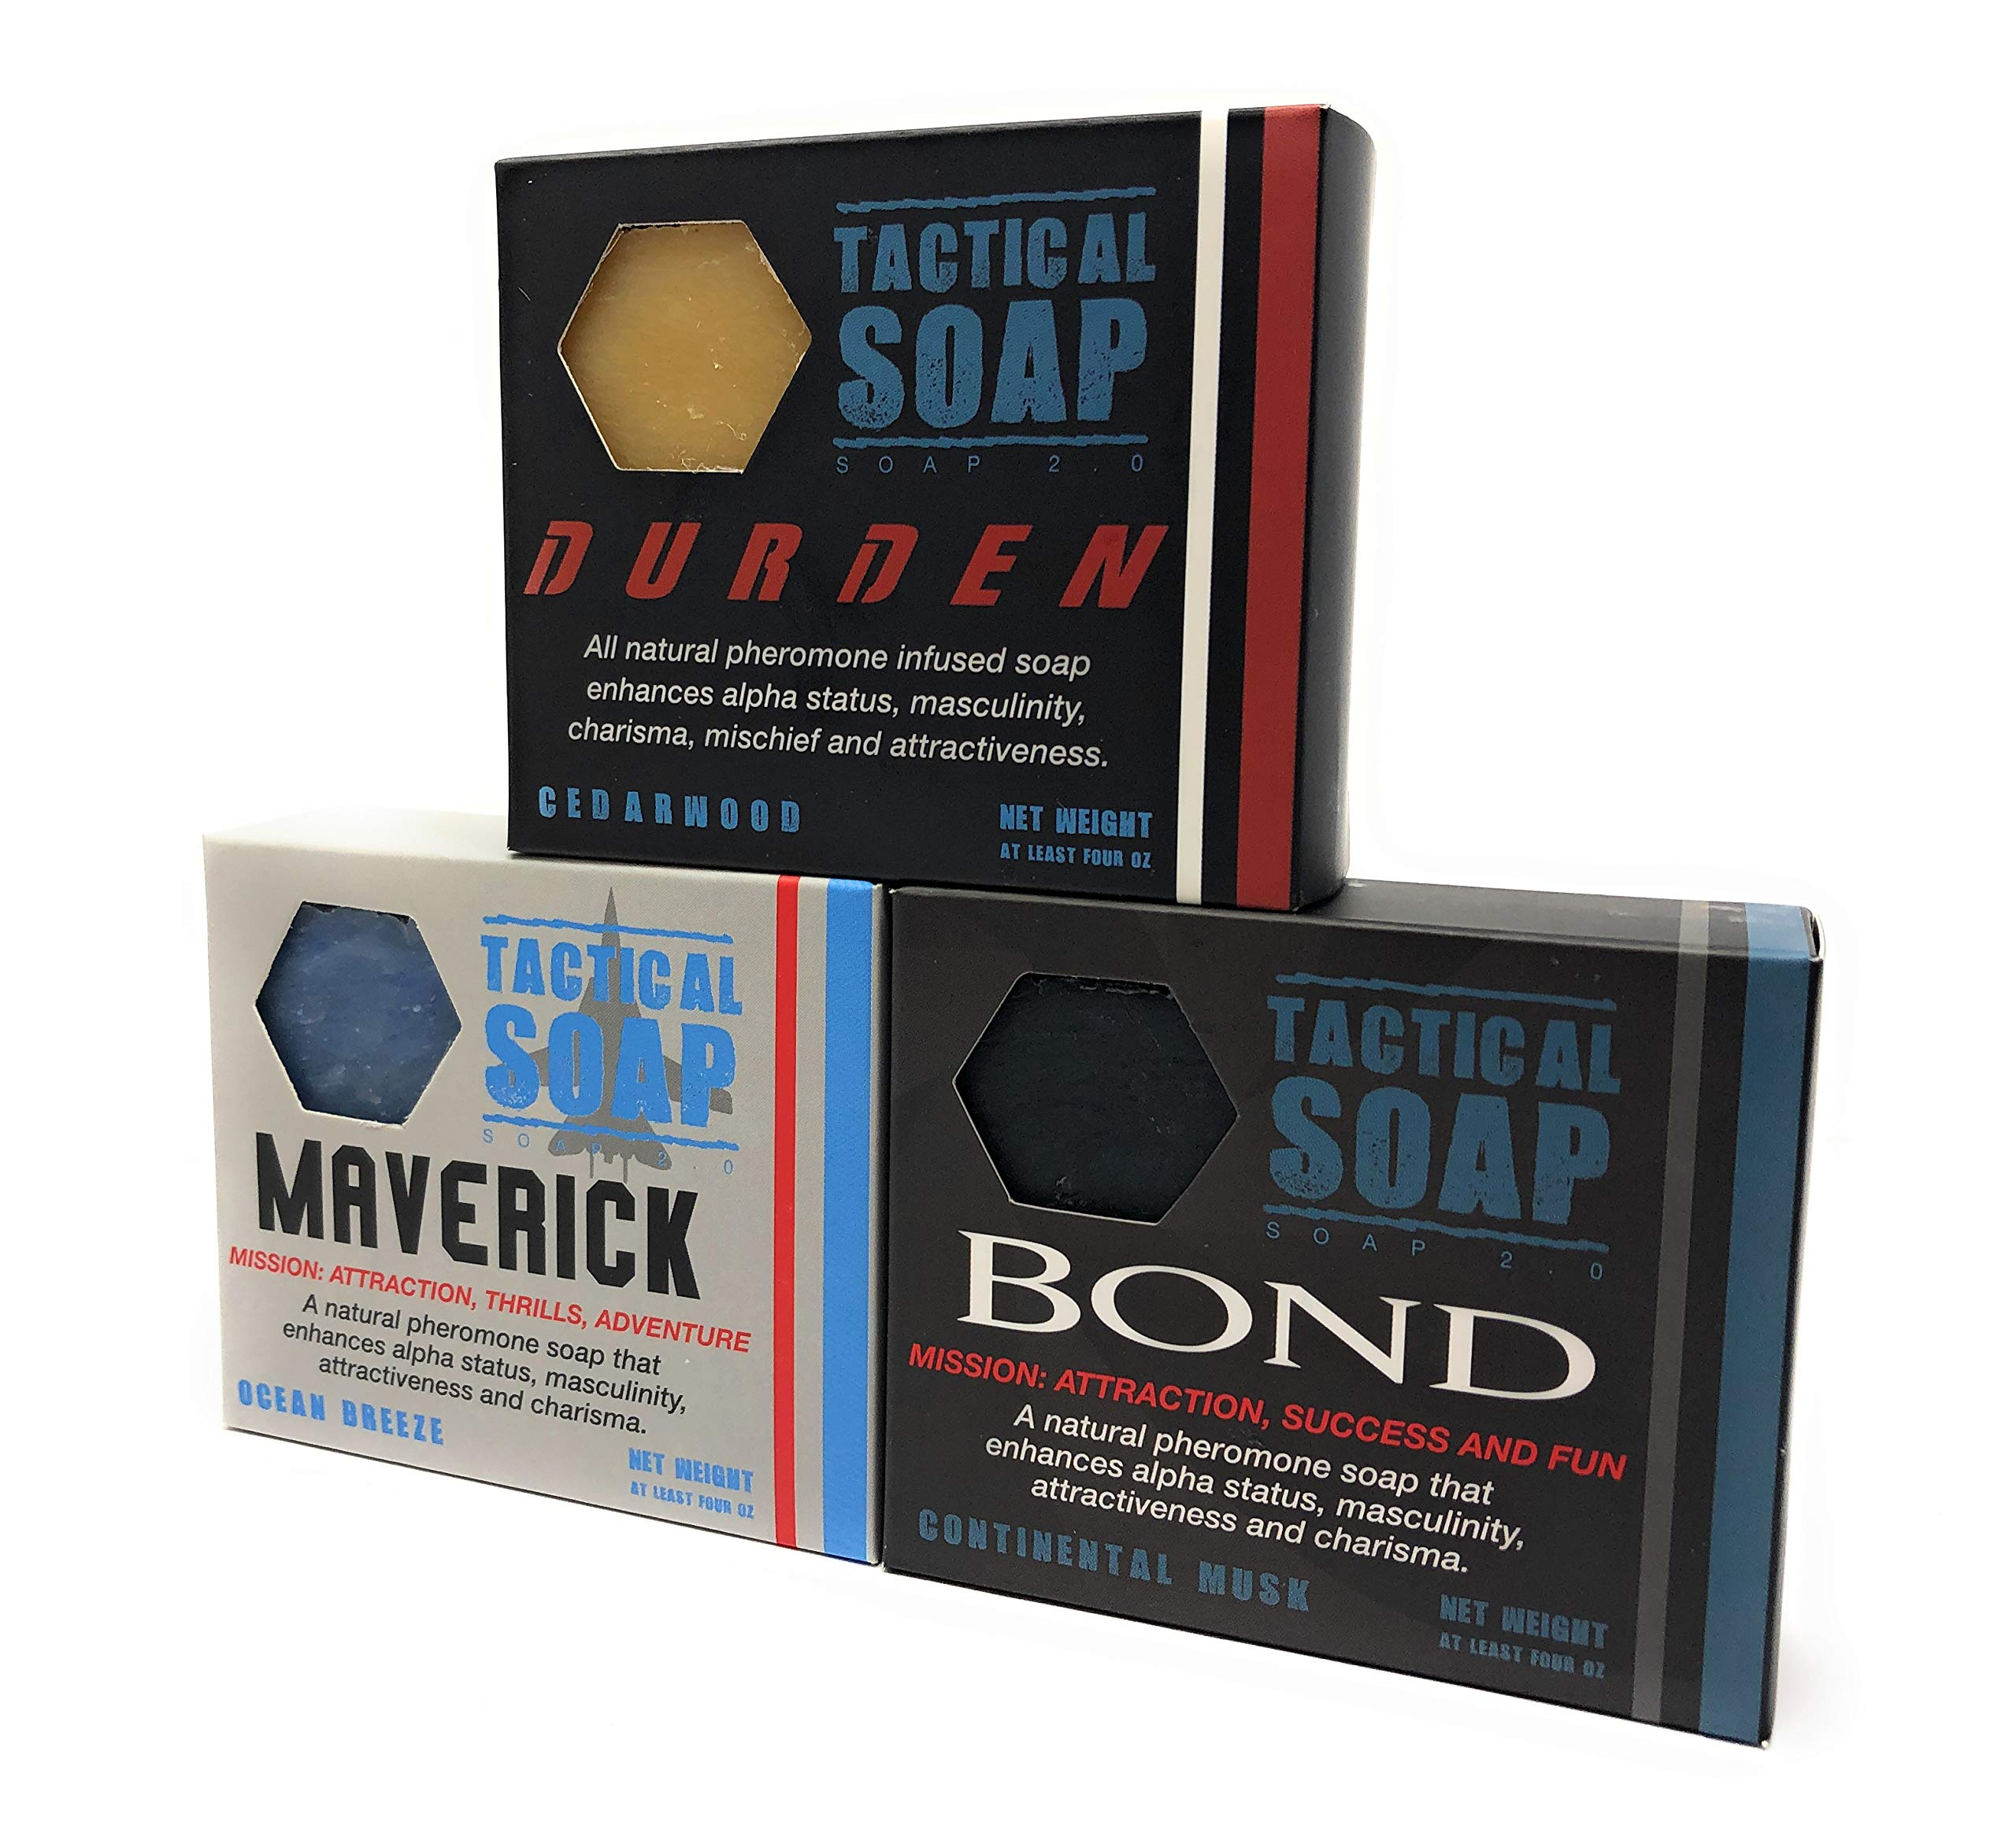 Tactical Soap - The Trifecta (1 of Durden, Bond, and Maverick) - Mens Vegan All Natural Soap Bars Infused with Powerful Pheromone Formula for Attraction